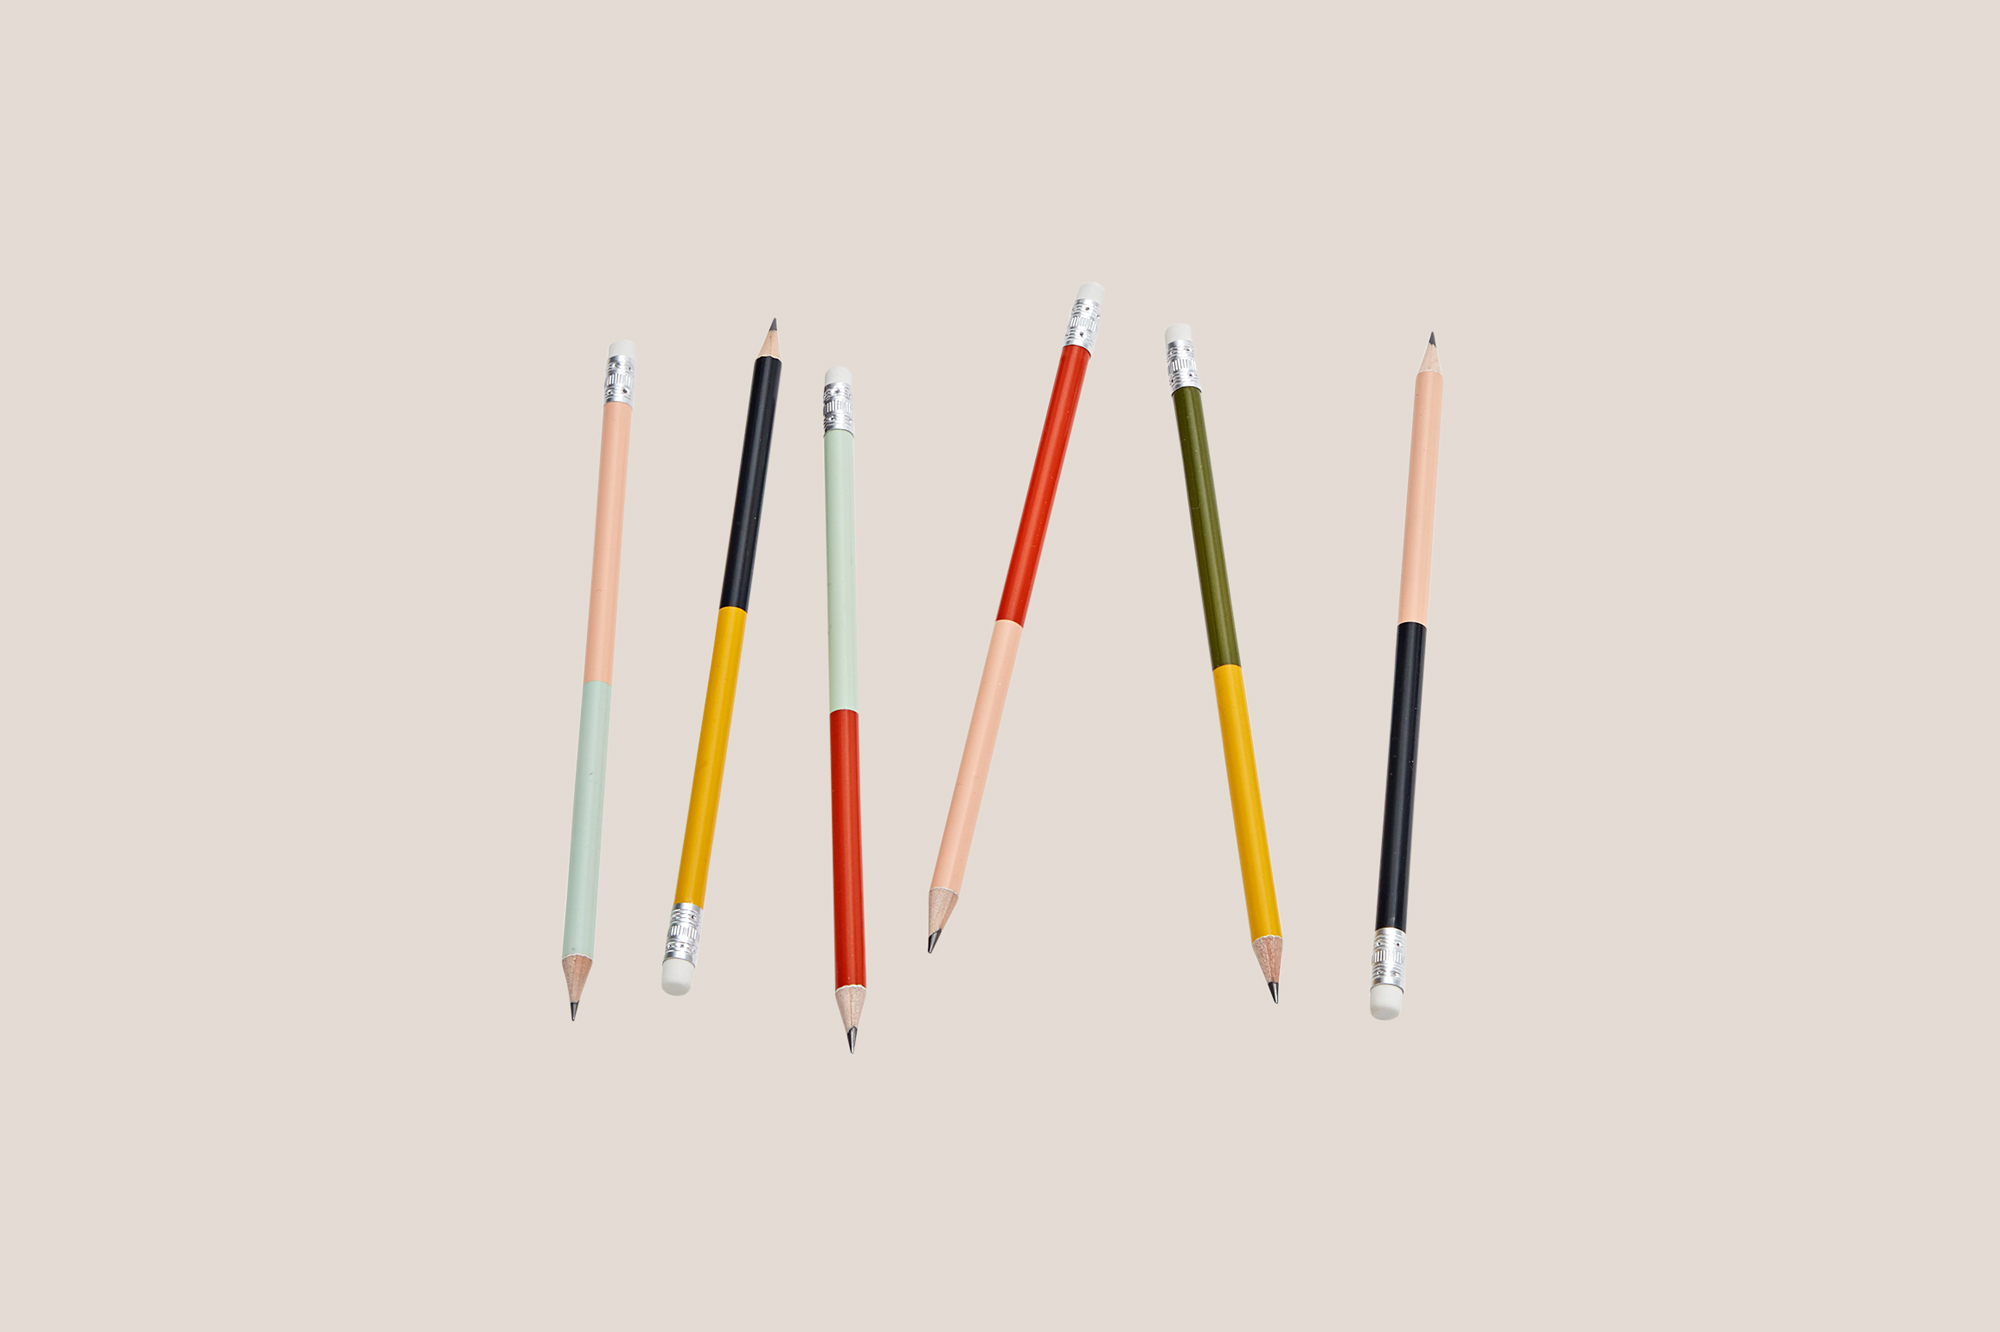 assortment of two-toned pencils